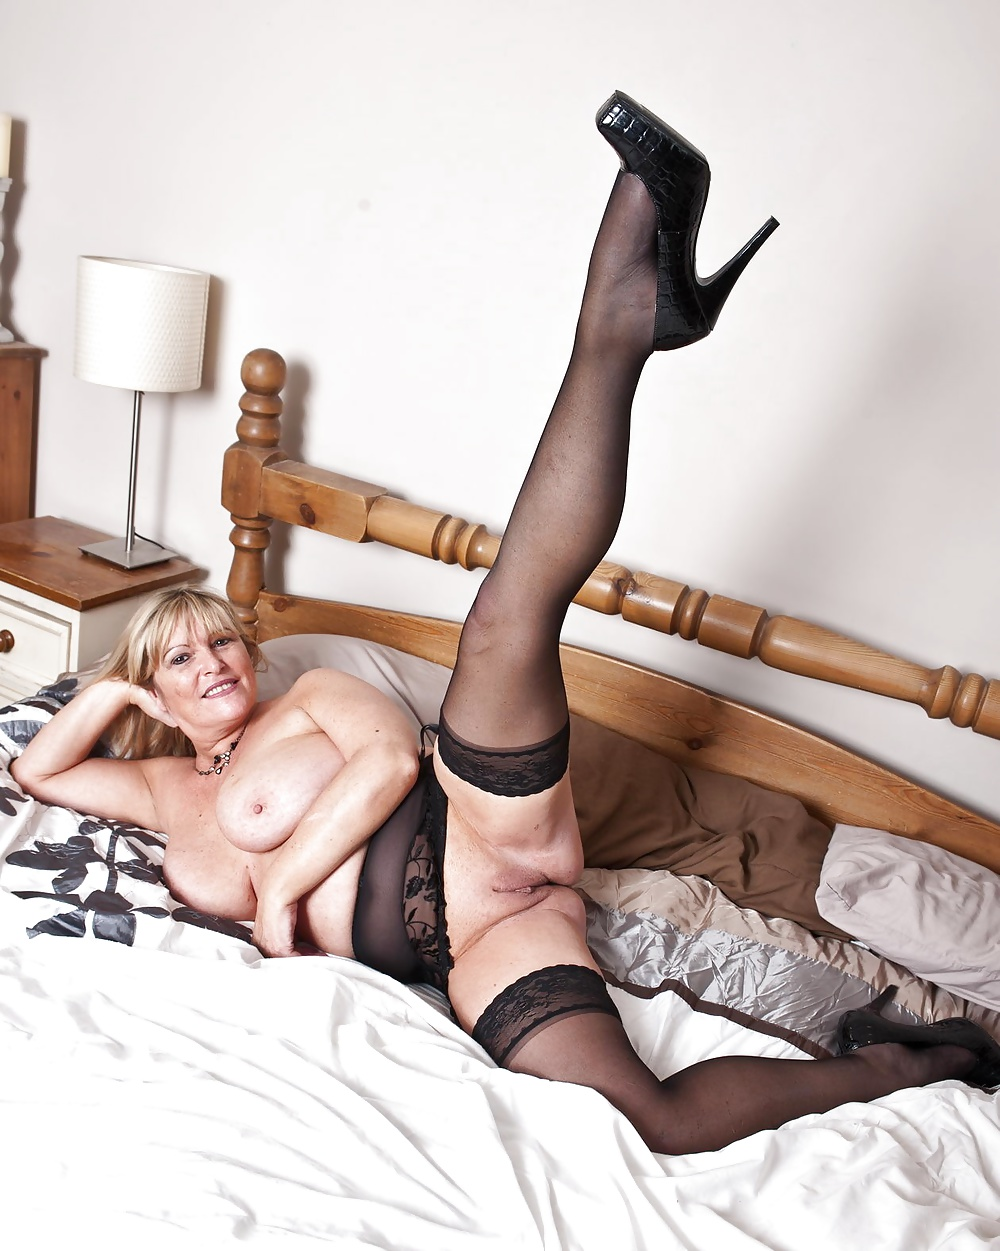 Snapchat mature naturals in stockings videos